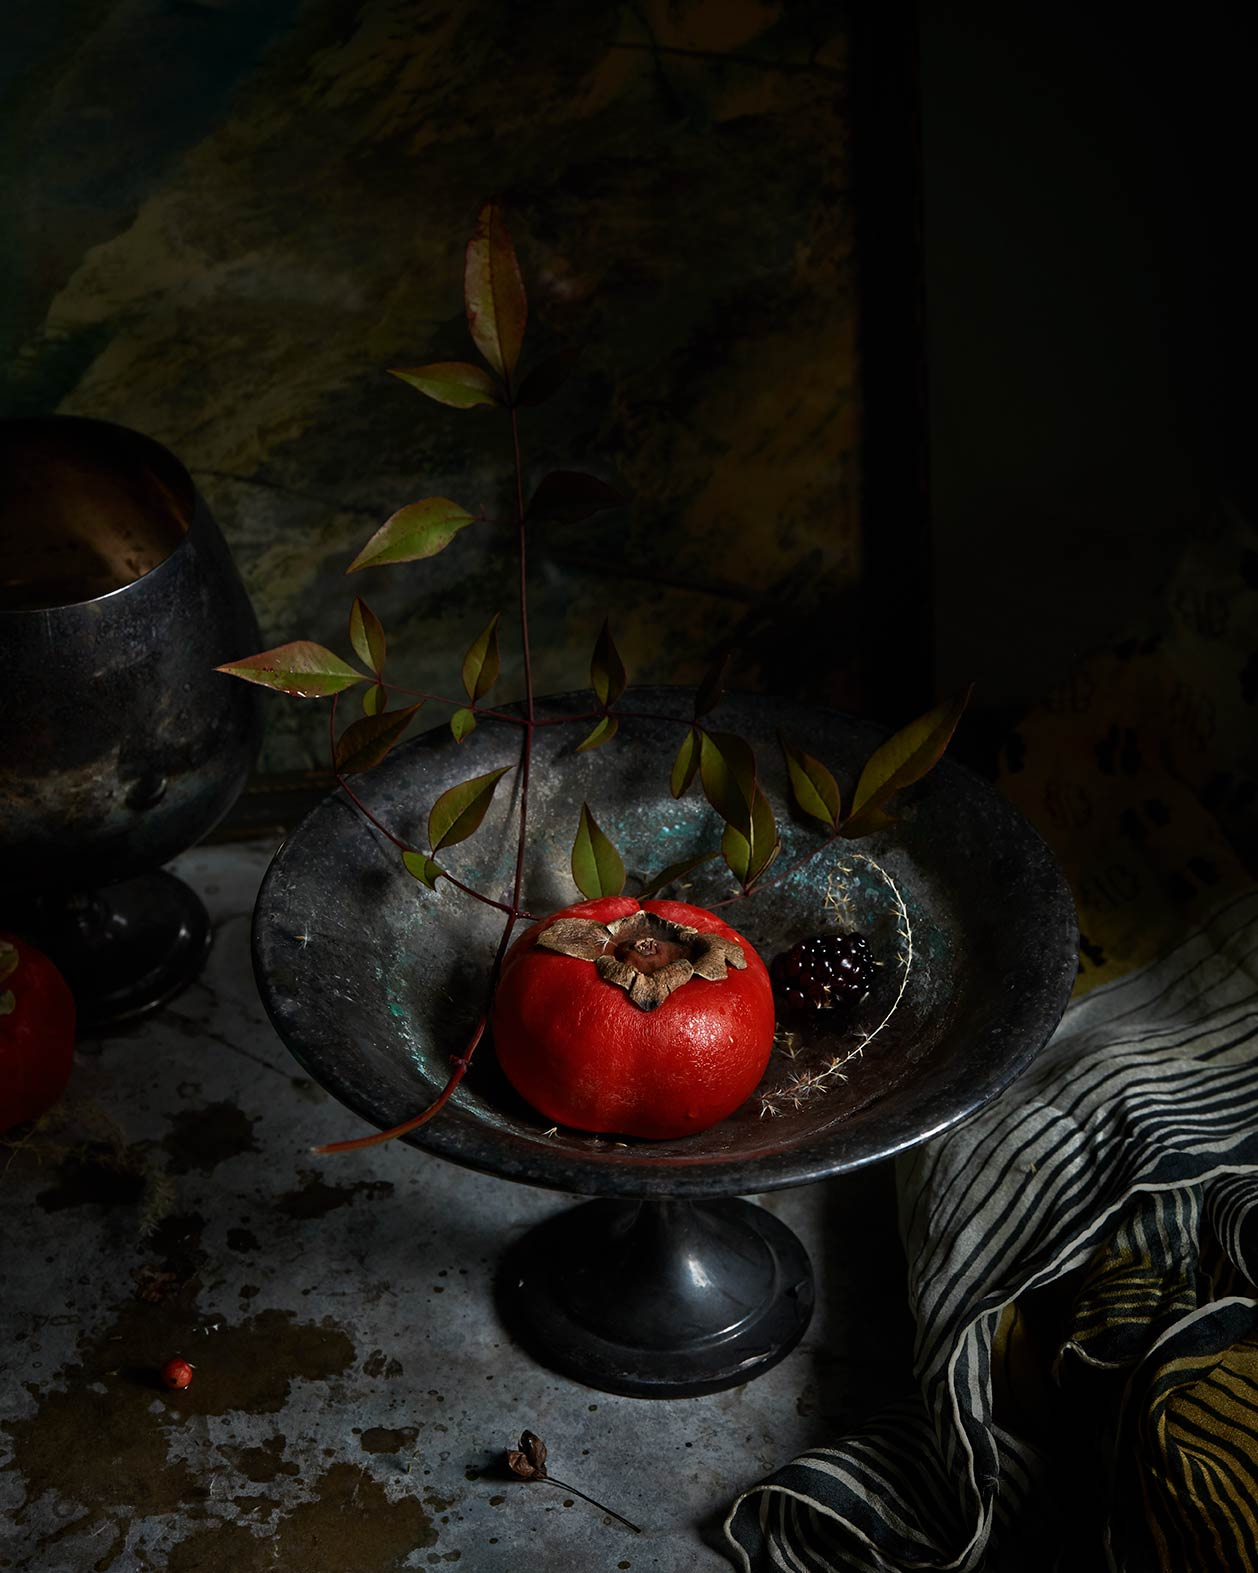 Dark still life photograph featuring fruit and old props.